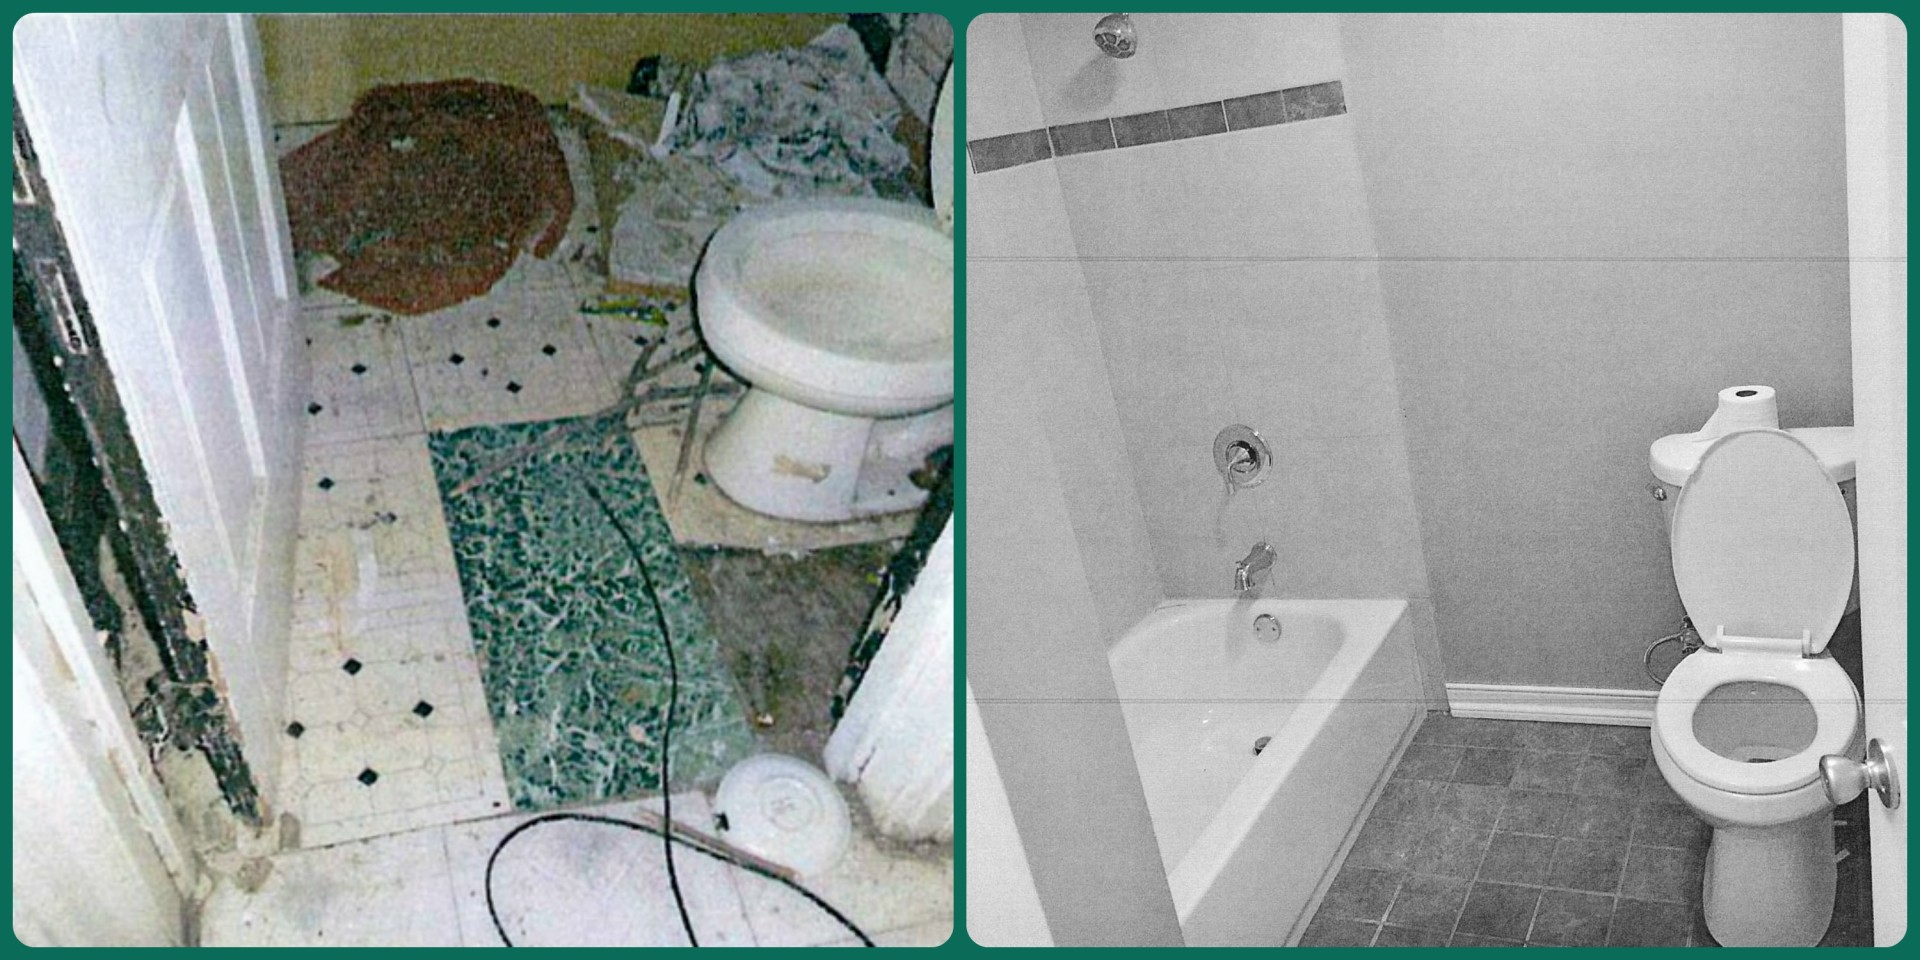 Lee Family's Bathroom: Before & After